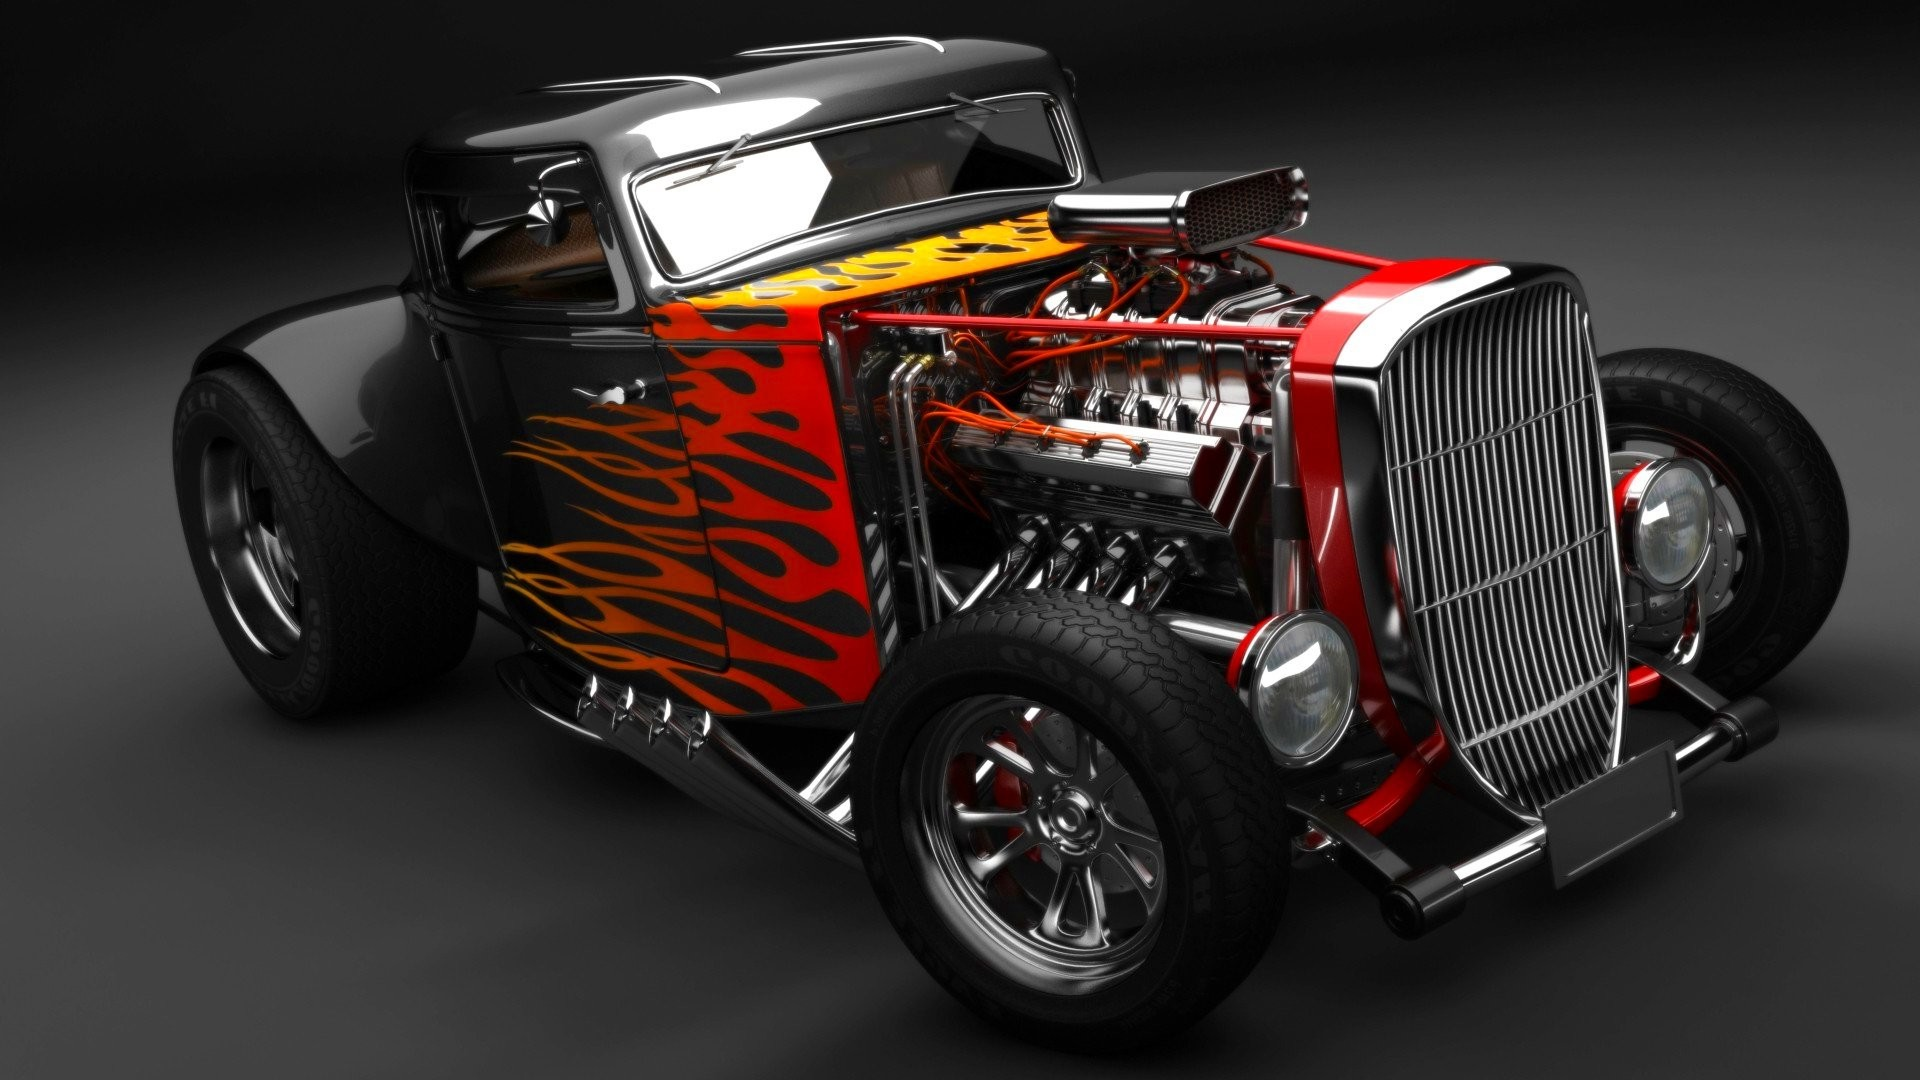 1920x1080 HOT ROD rods custom street muscle streetrod hotrod wallpaper |  |  947854 | WallpaperUP